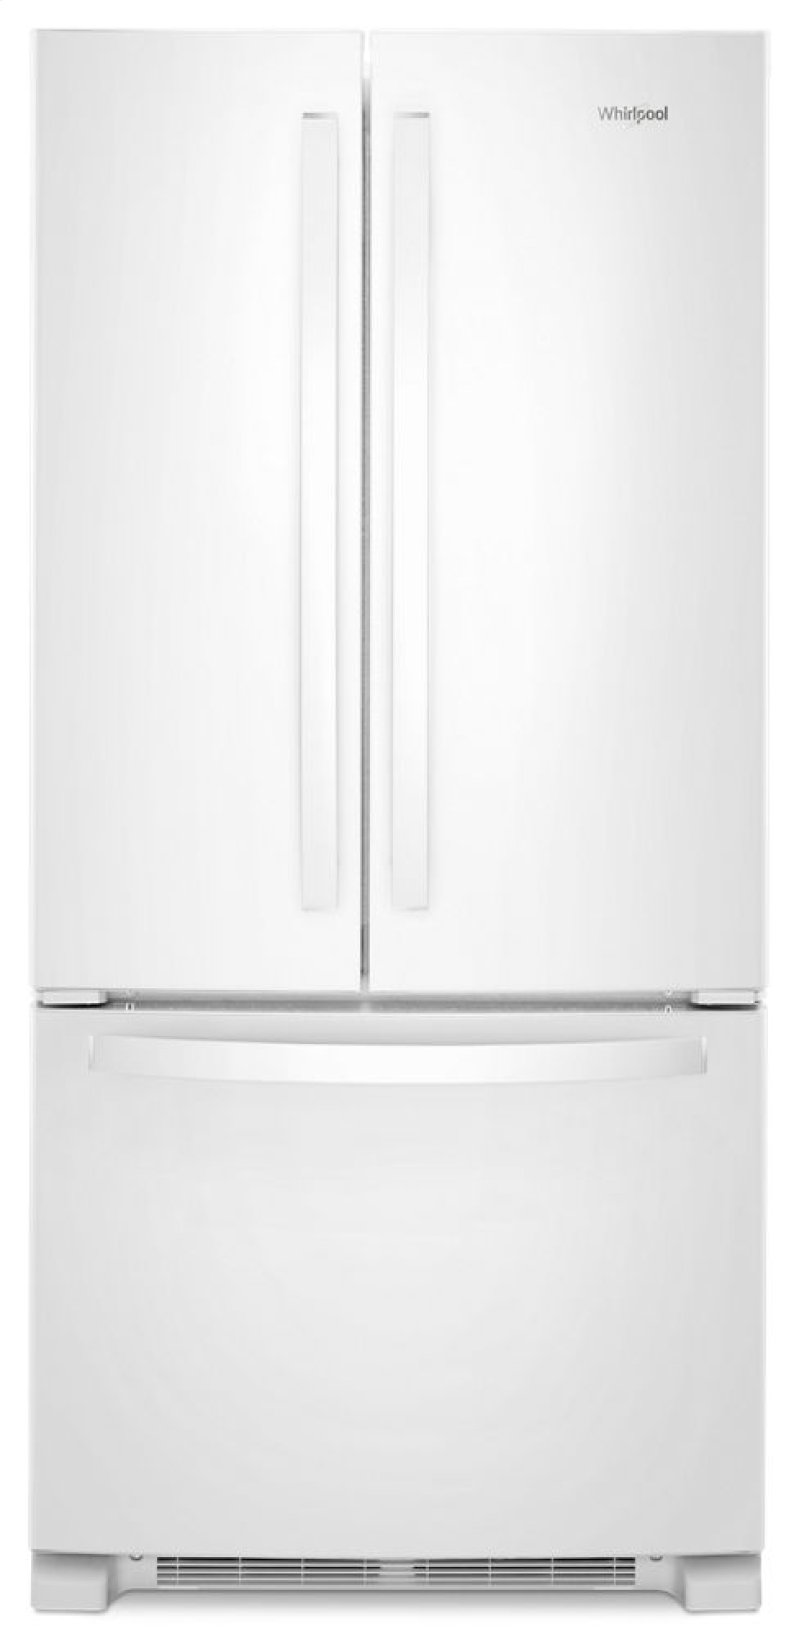 Wrf532smhw In White By Whirlpool In New Providence Nj 33 Inch